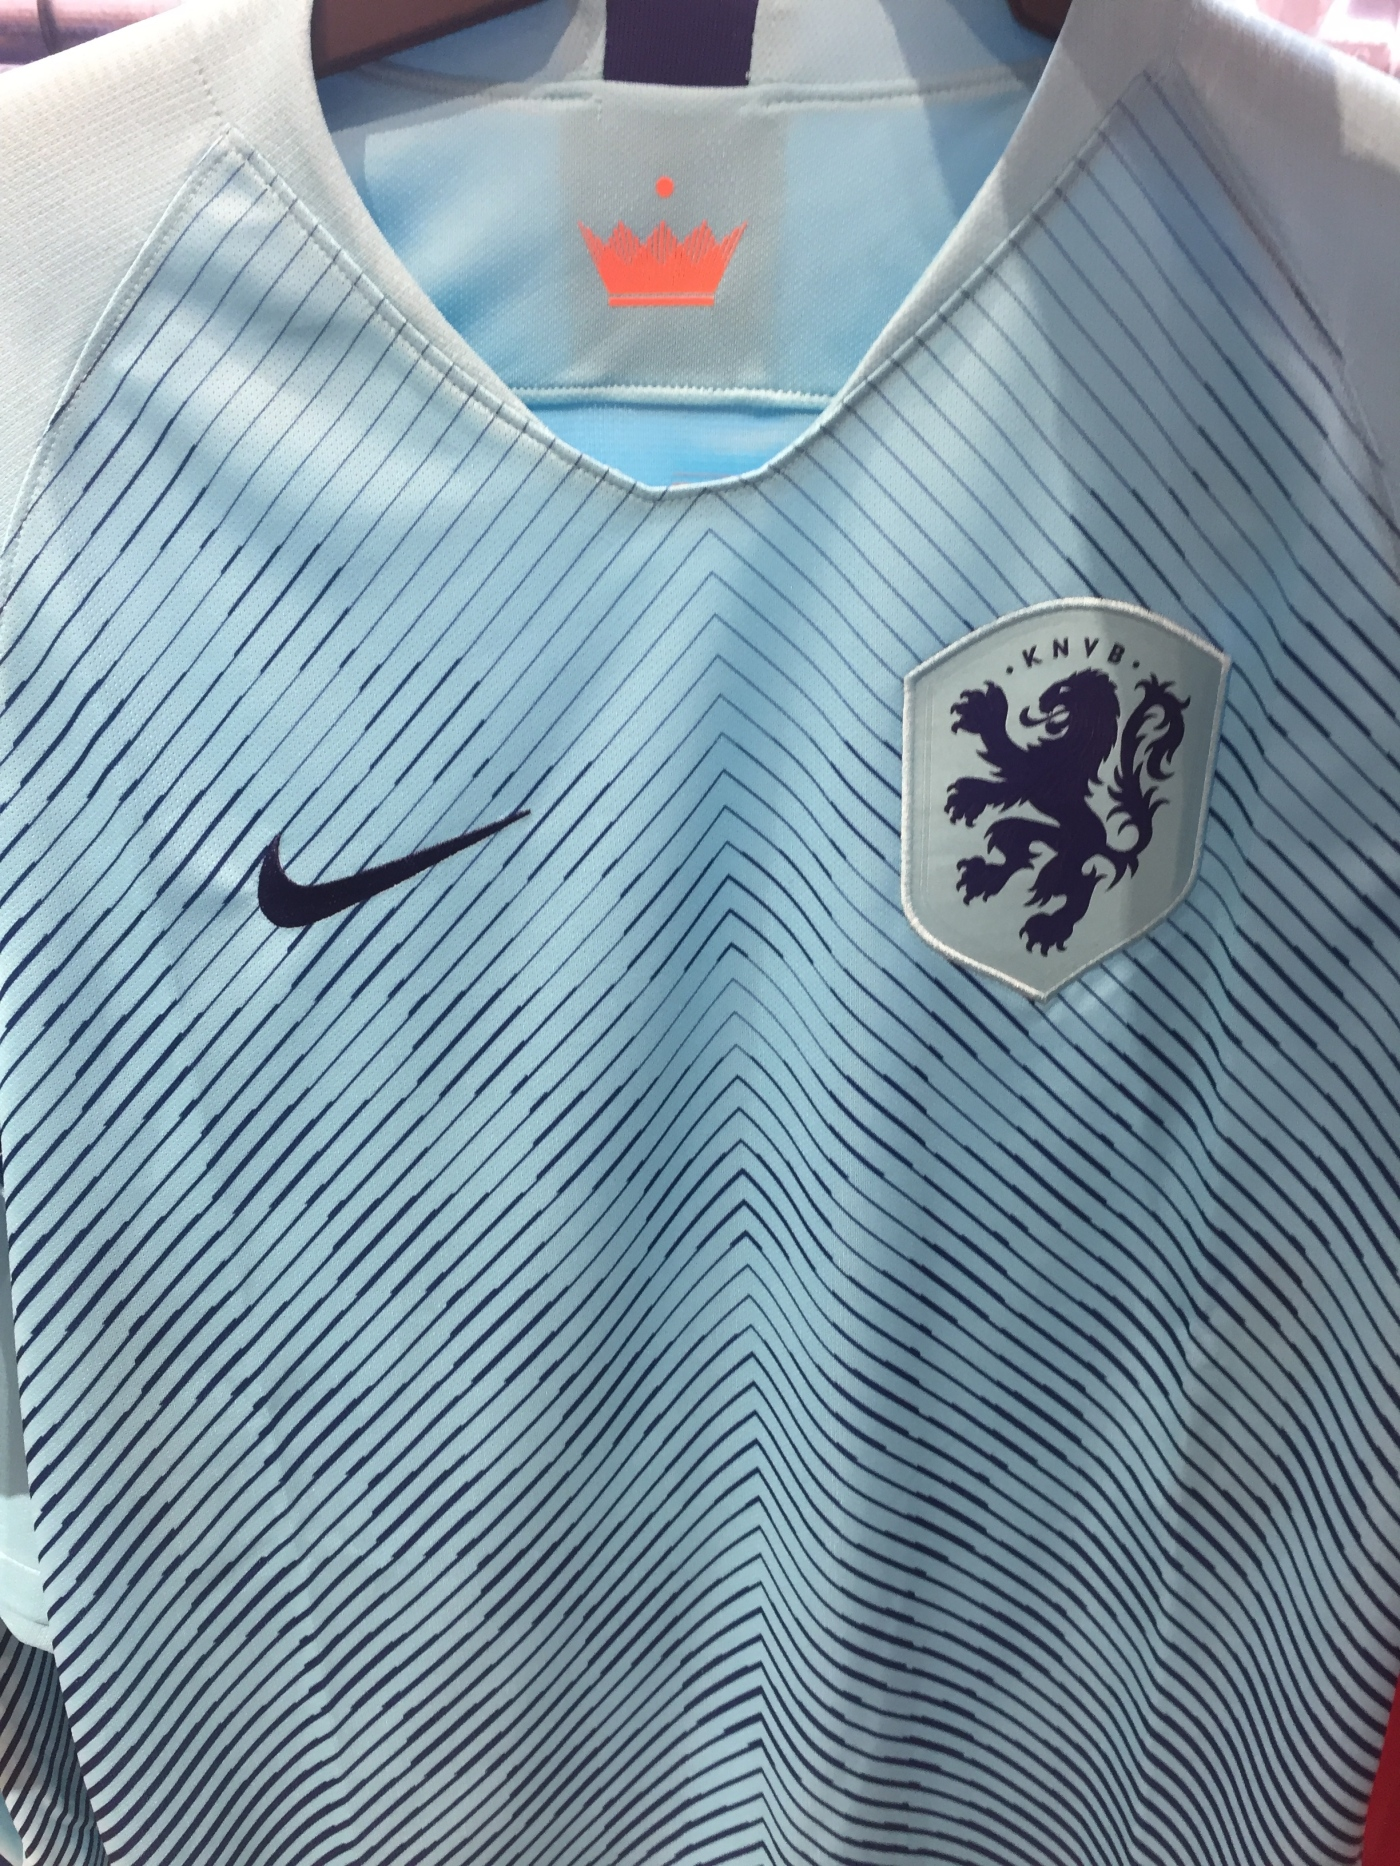 detailed look cfd32 bd391 Nike Non-World Cup Jerseys: 2018 Netherlands Away Kit – New ...